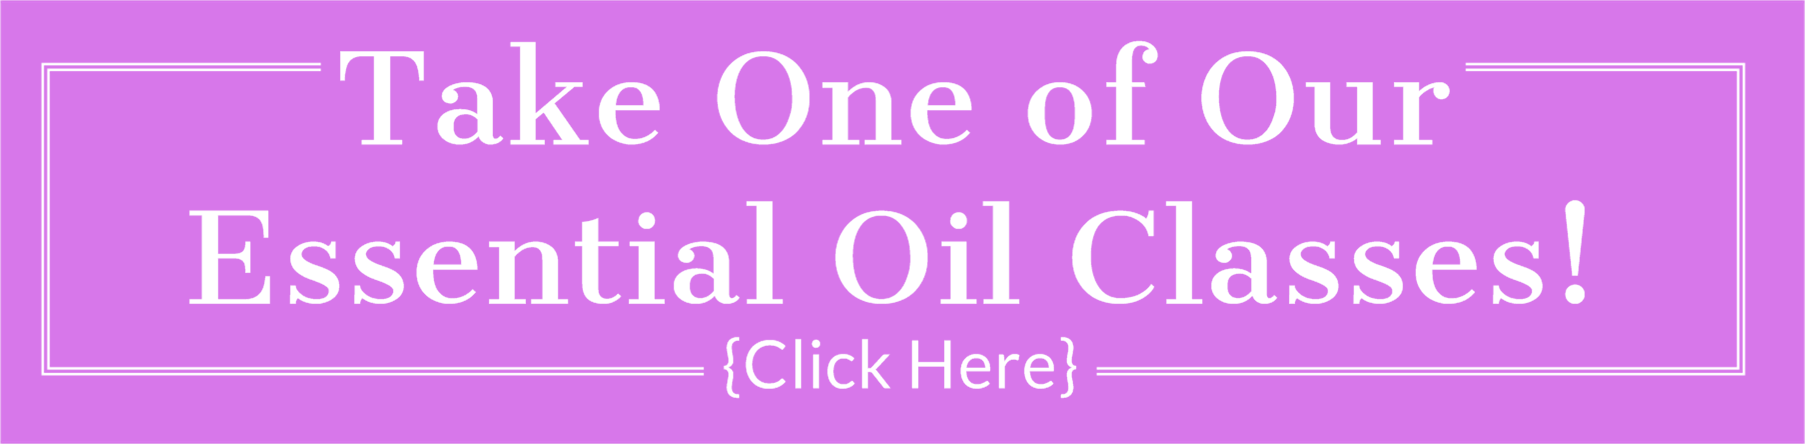 Take One Of Our Essential Oil Classes | Feasting On Joy